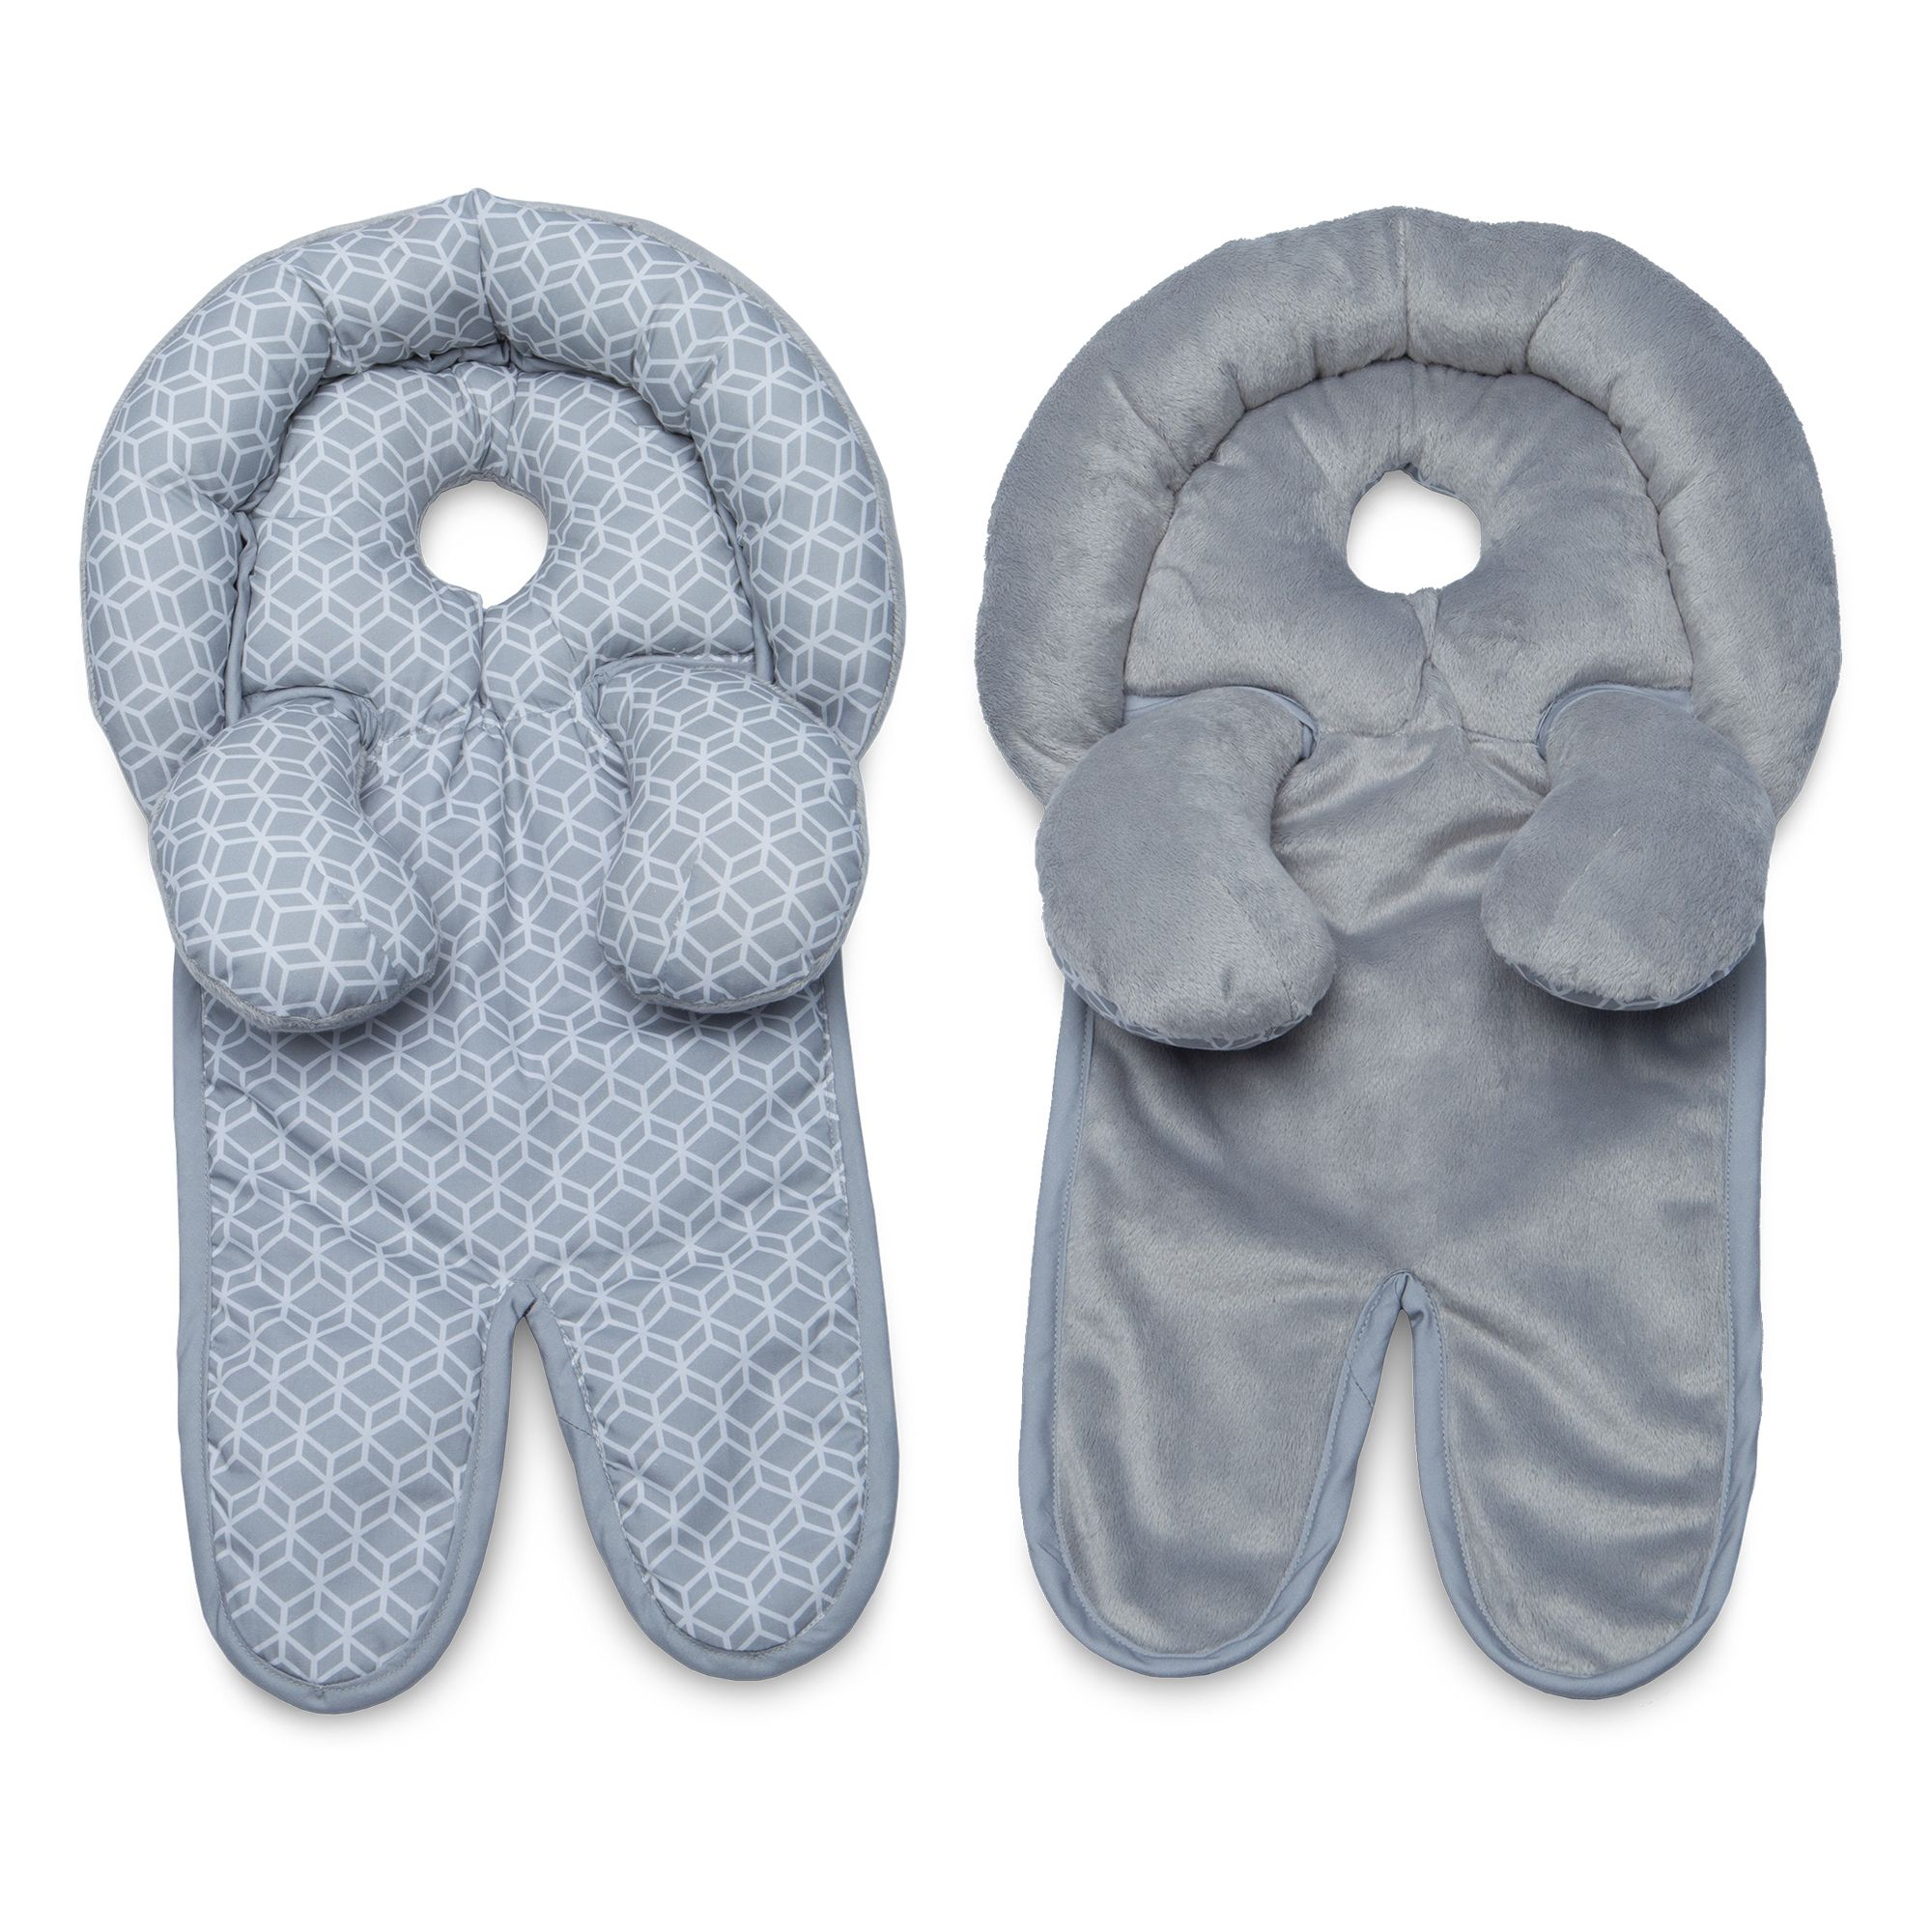 boppy head u0026 neck support pillow